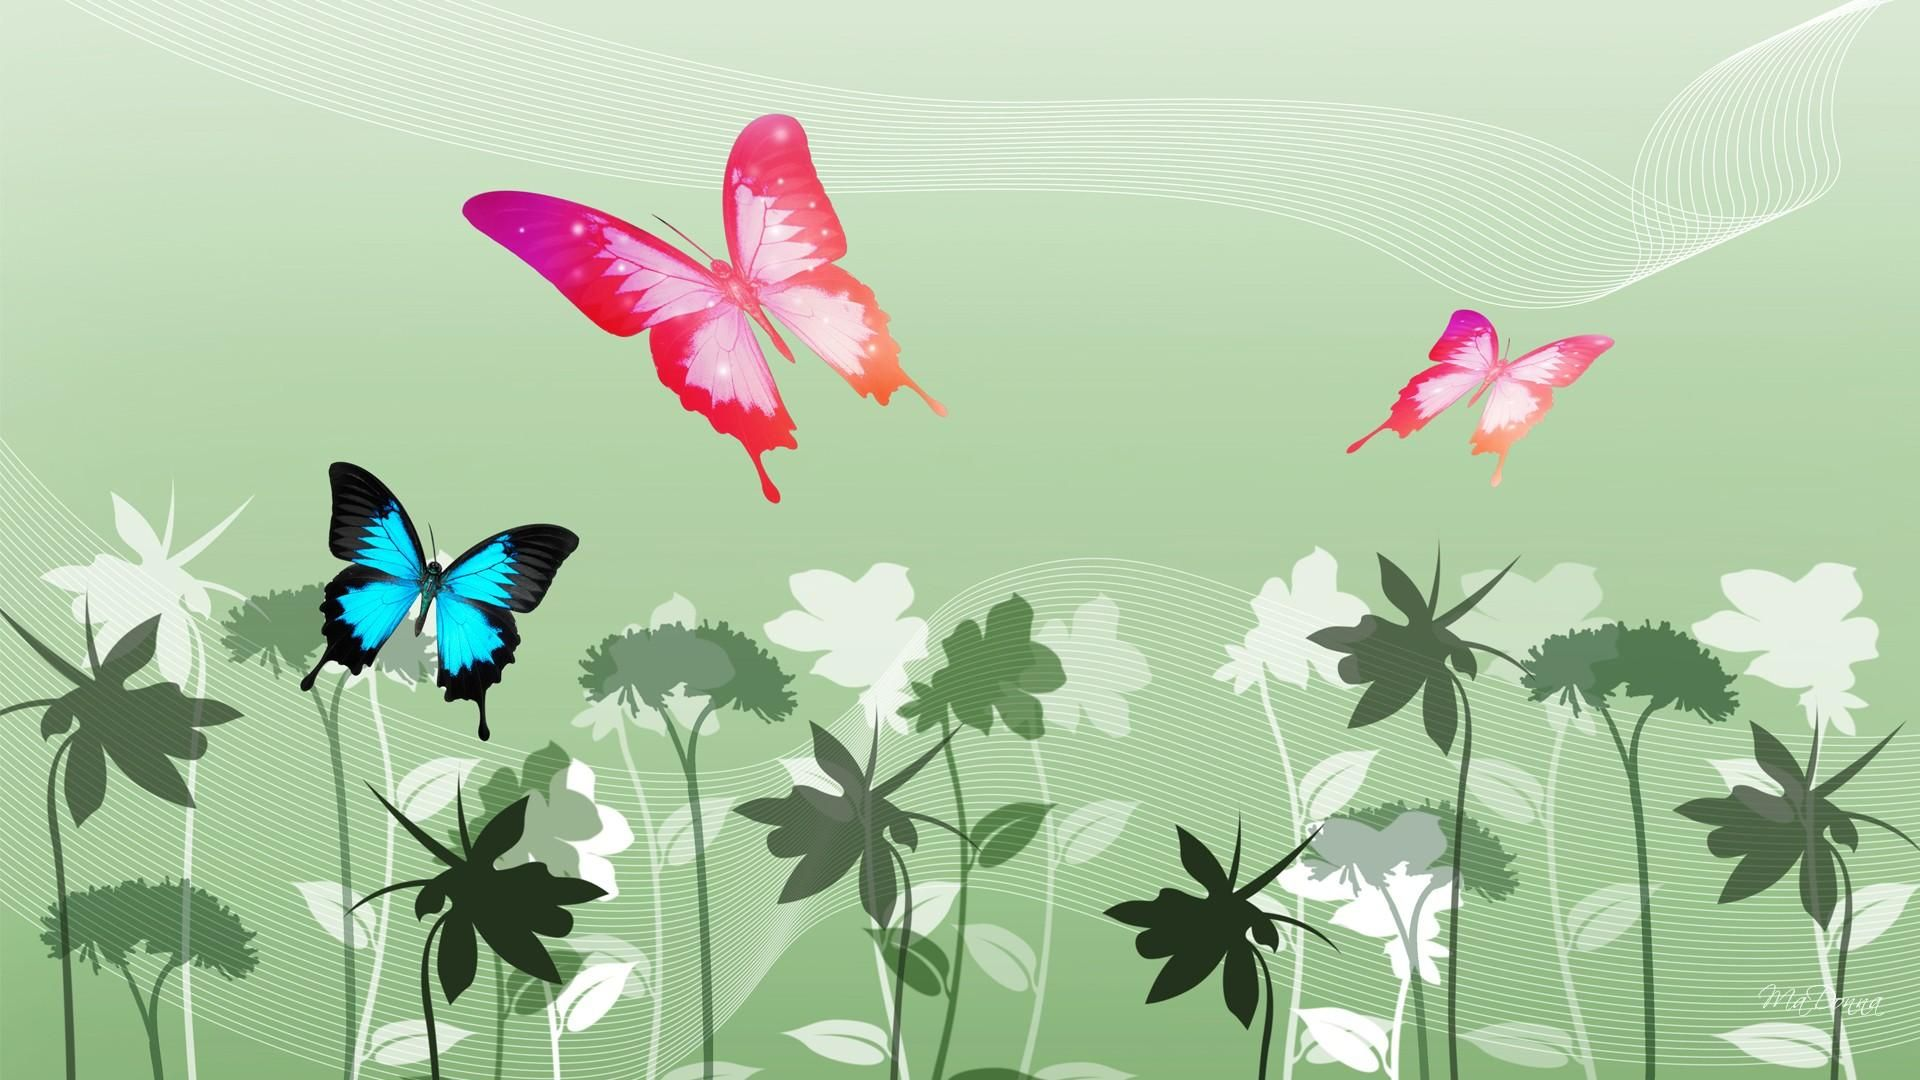 butterfly wallpaper | Colorful Butterfly Wallpapers 27 Background ... for Colorful Butterfly Wallpapers  59nar